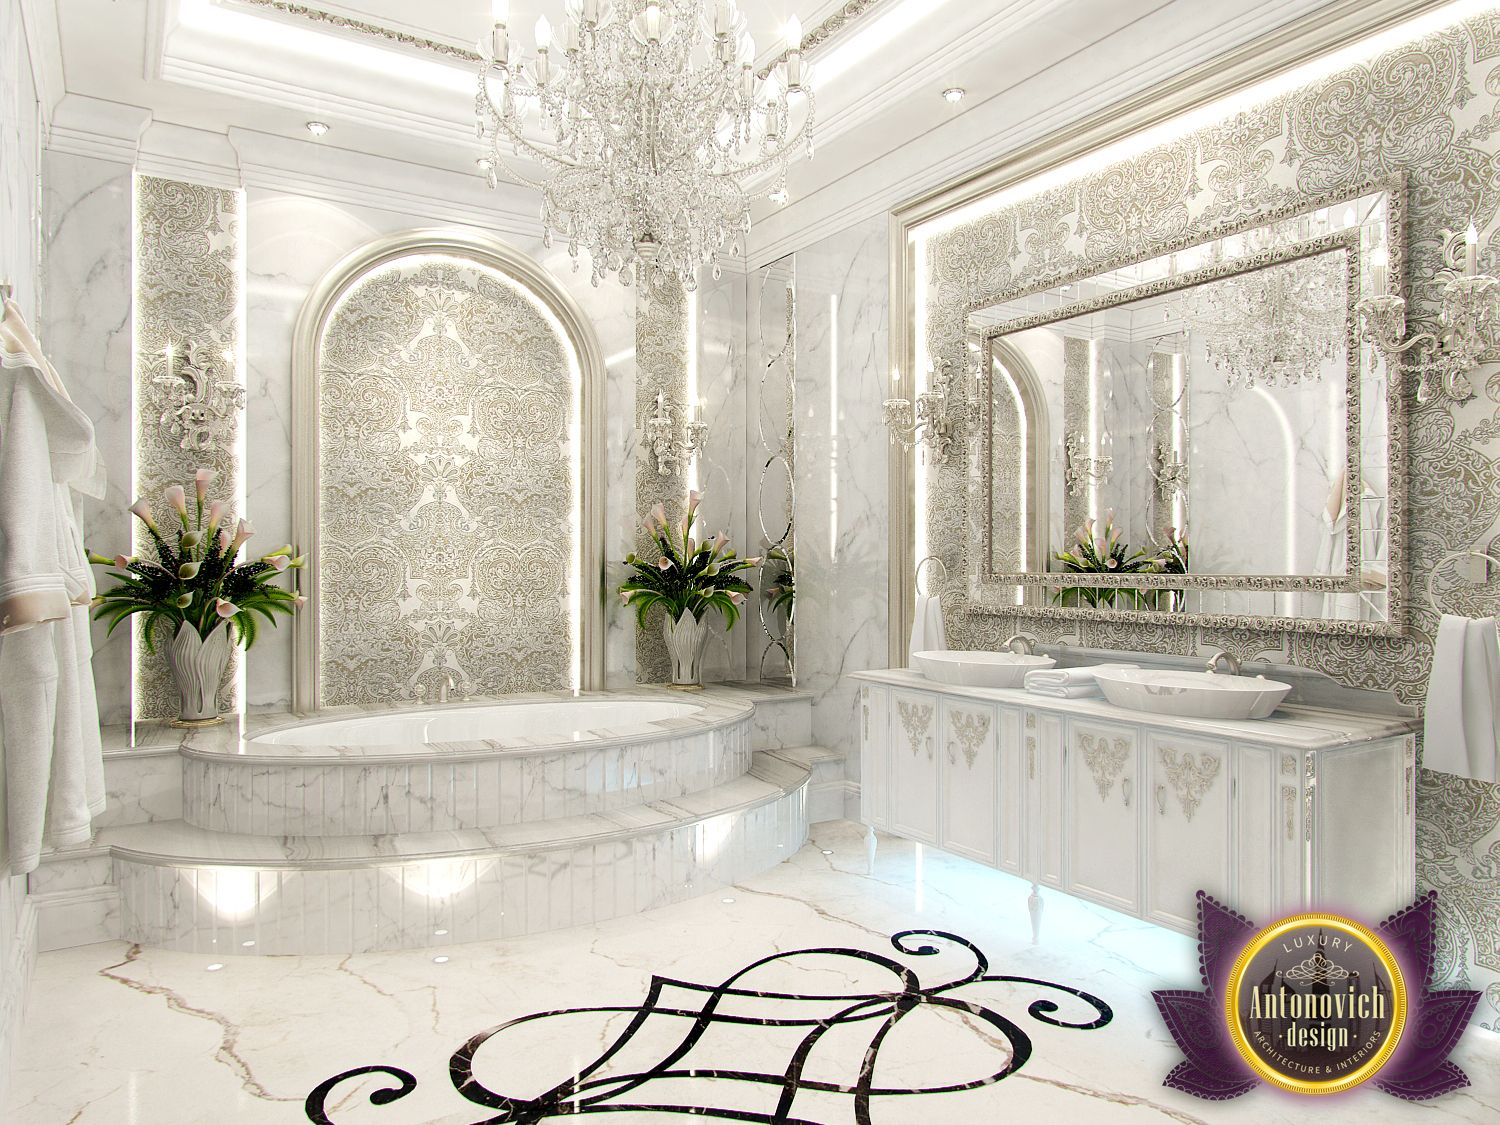 Luxury antonovich design uae interior bathroom from luxury antonovich design Bathroom interior design 2016